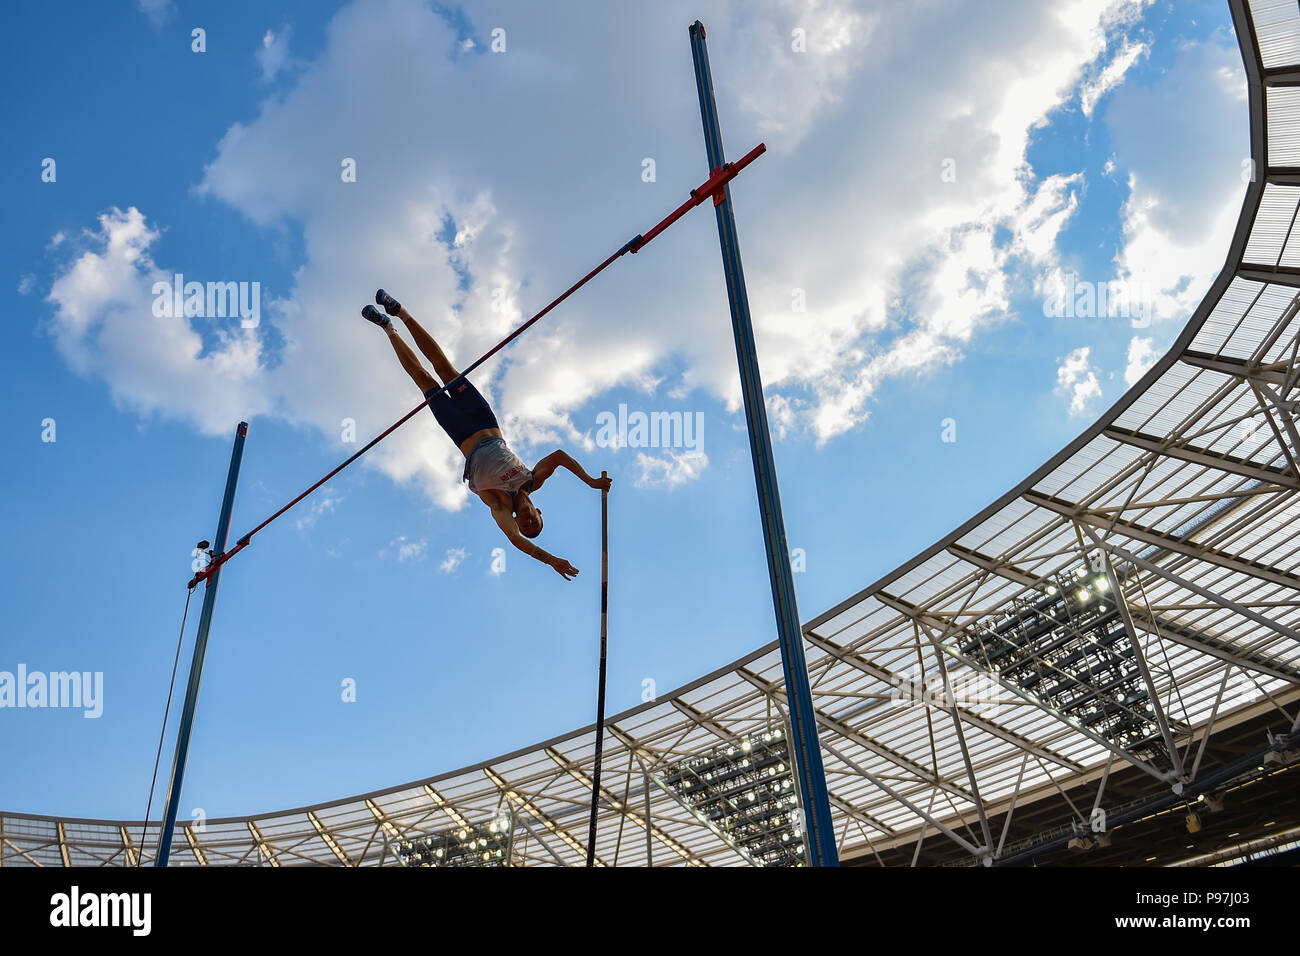 Charlie Myers (GBR) n Men's Pole Vault during Athletics World Cup London 2018 at London Stadium on Sunday, 15 July 2018. LONDON, ENGLAND. Credit: Taka G Wu - Stock Image